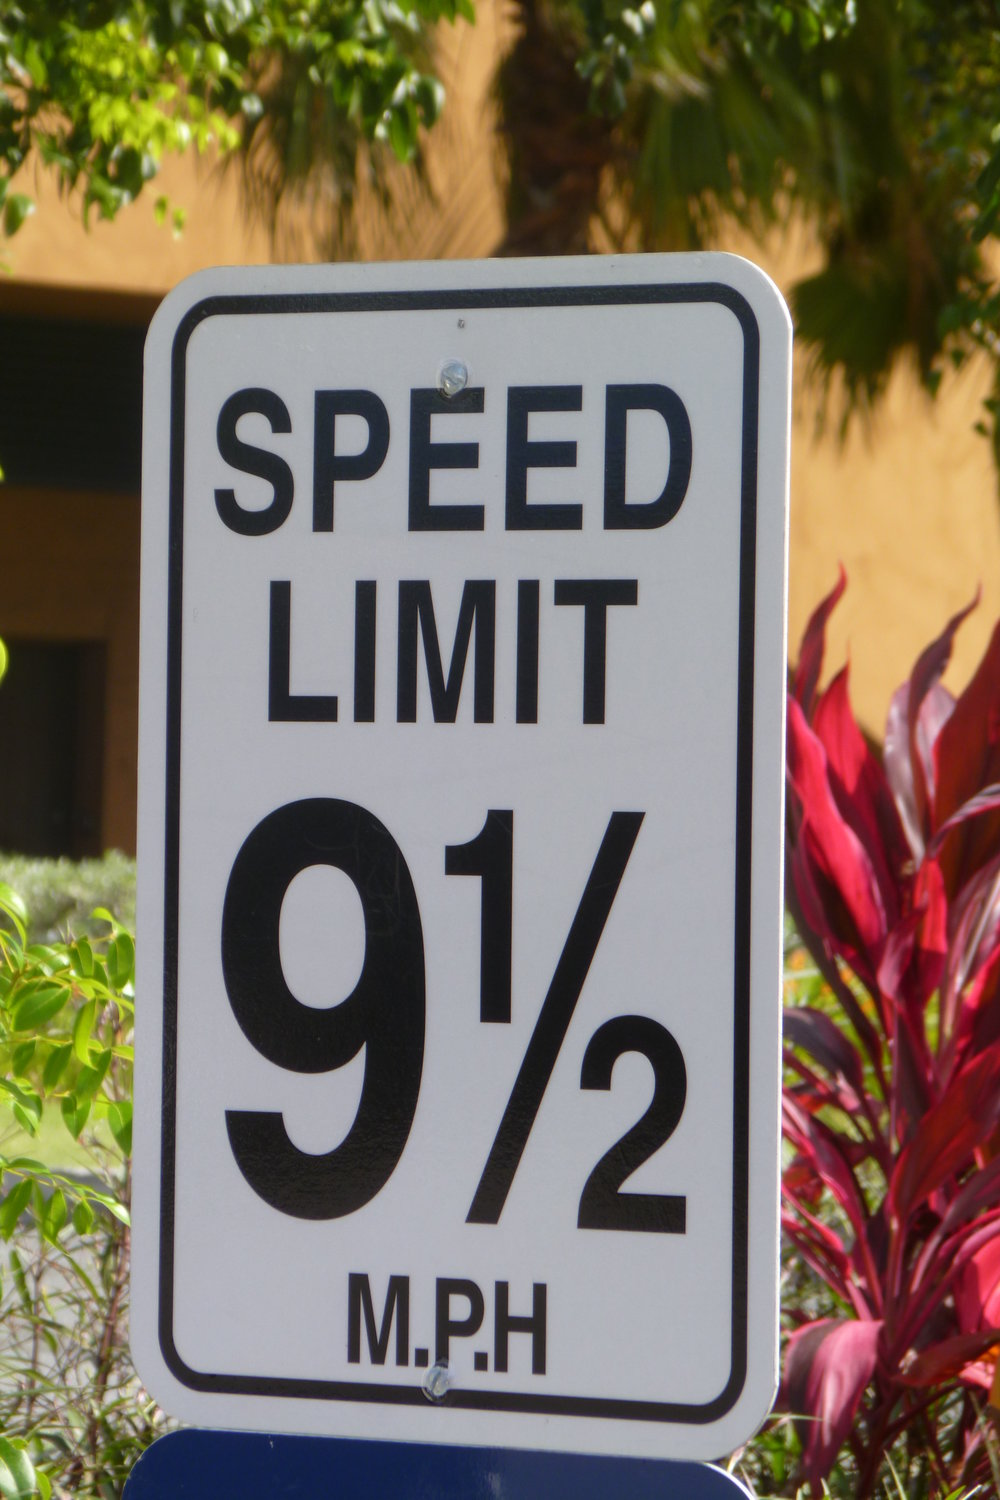 SPEED LIMIT SIGN.jpg